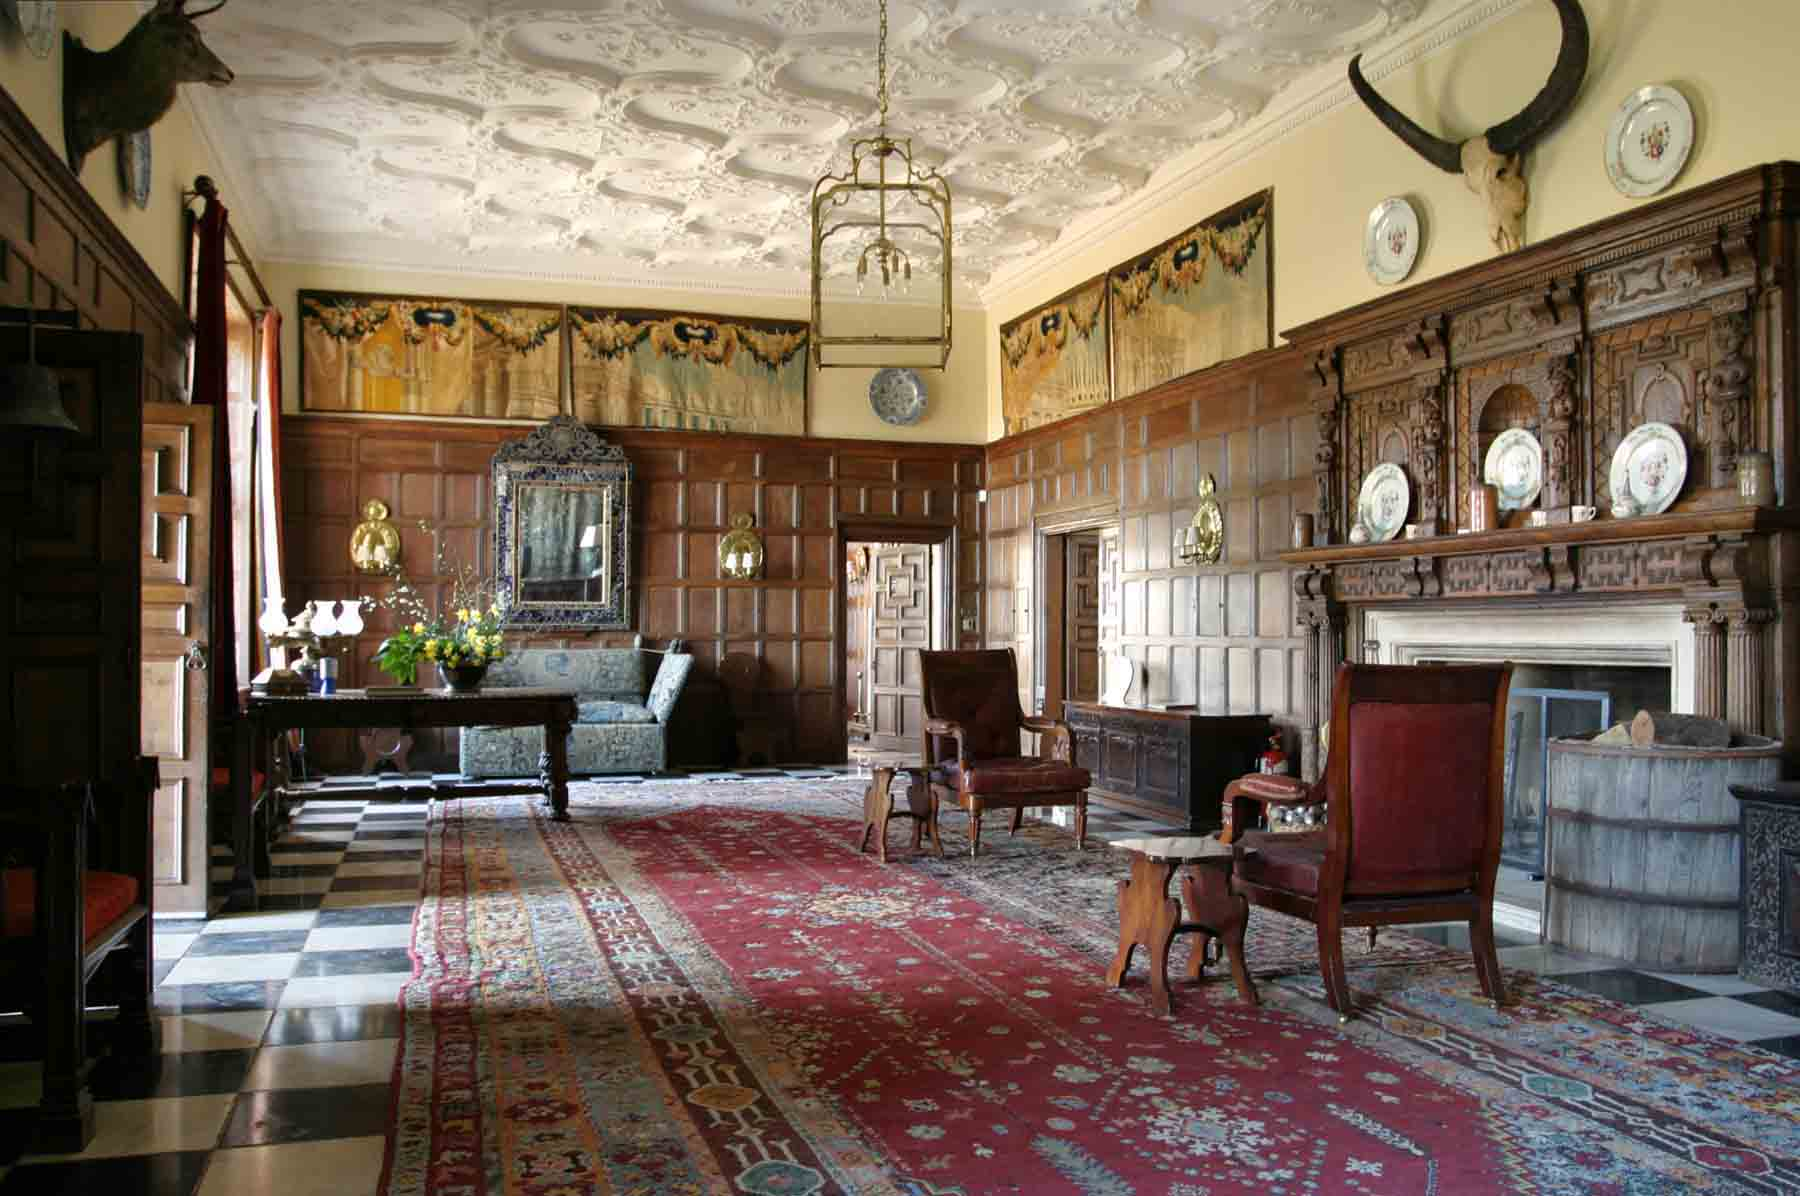 Carol_Fulton_Photography_traditional_interiors_Chilham_Castle_035.jpg